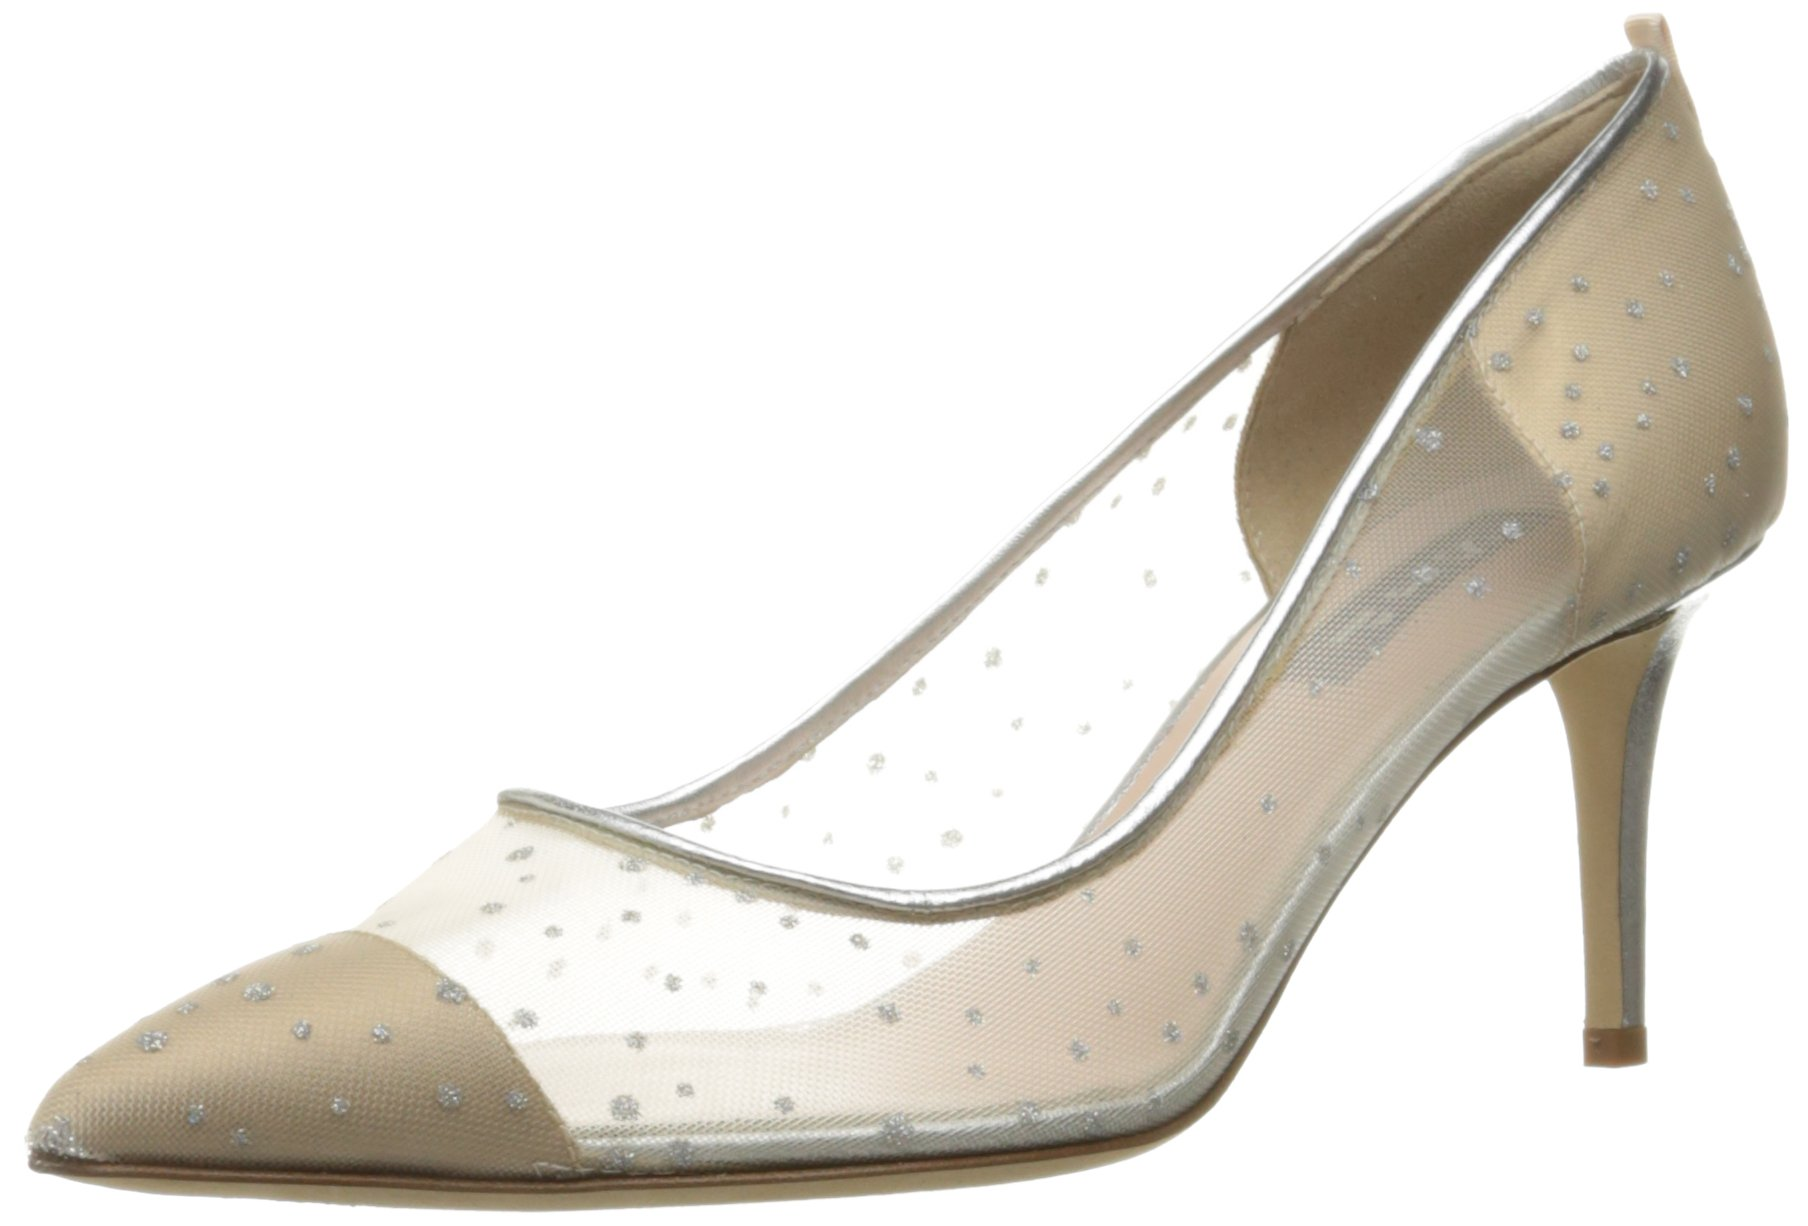 SJP by Sarah Jessica Parker Women's Glass 70 Dress Pump, Ivey, 38.5 EU/8 B US by SJP by Sarah Jessica Parker